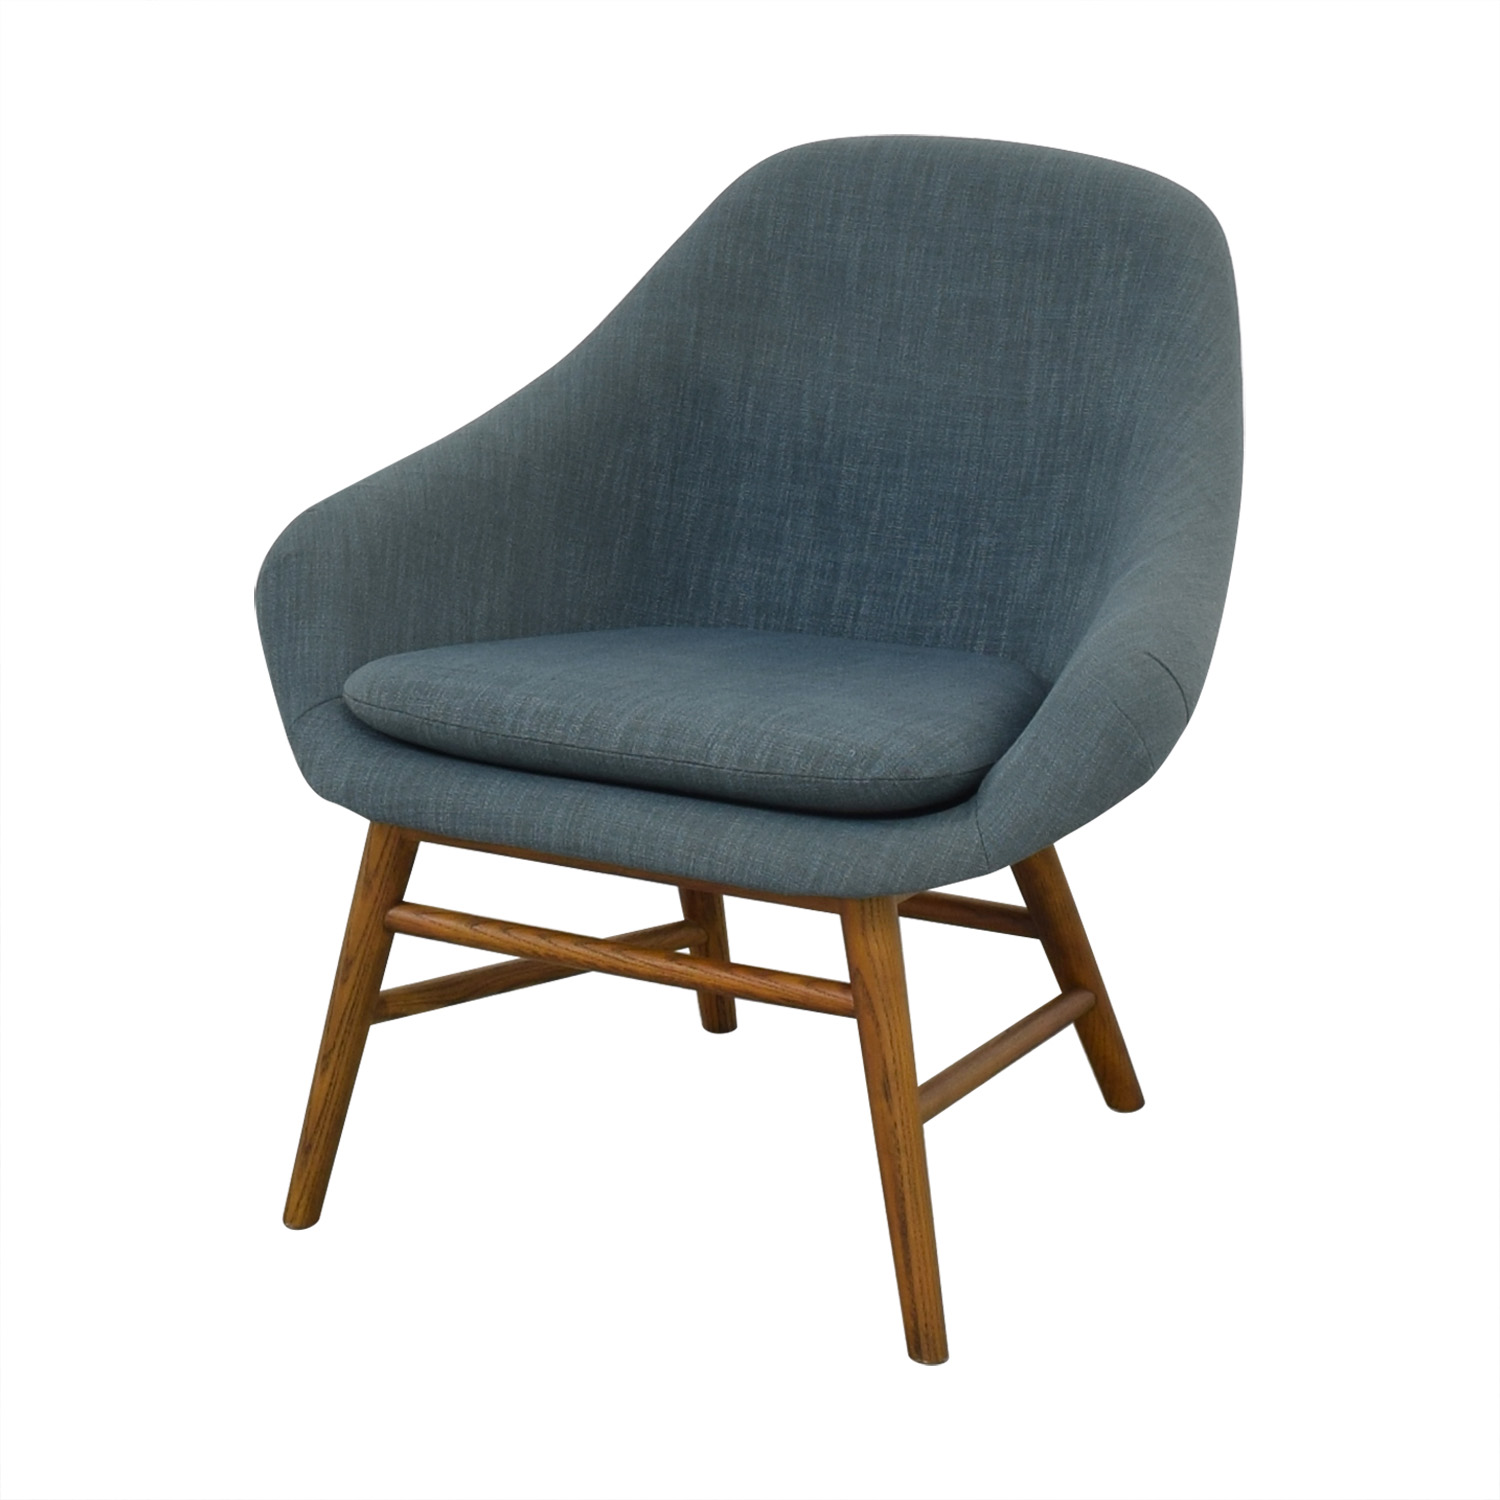 West Elm West Elm Mylo Chair second hand